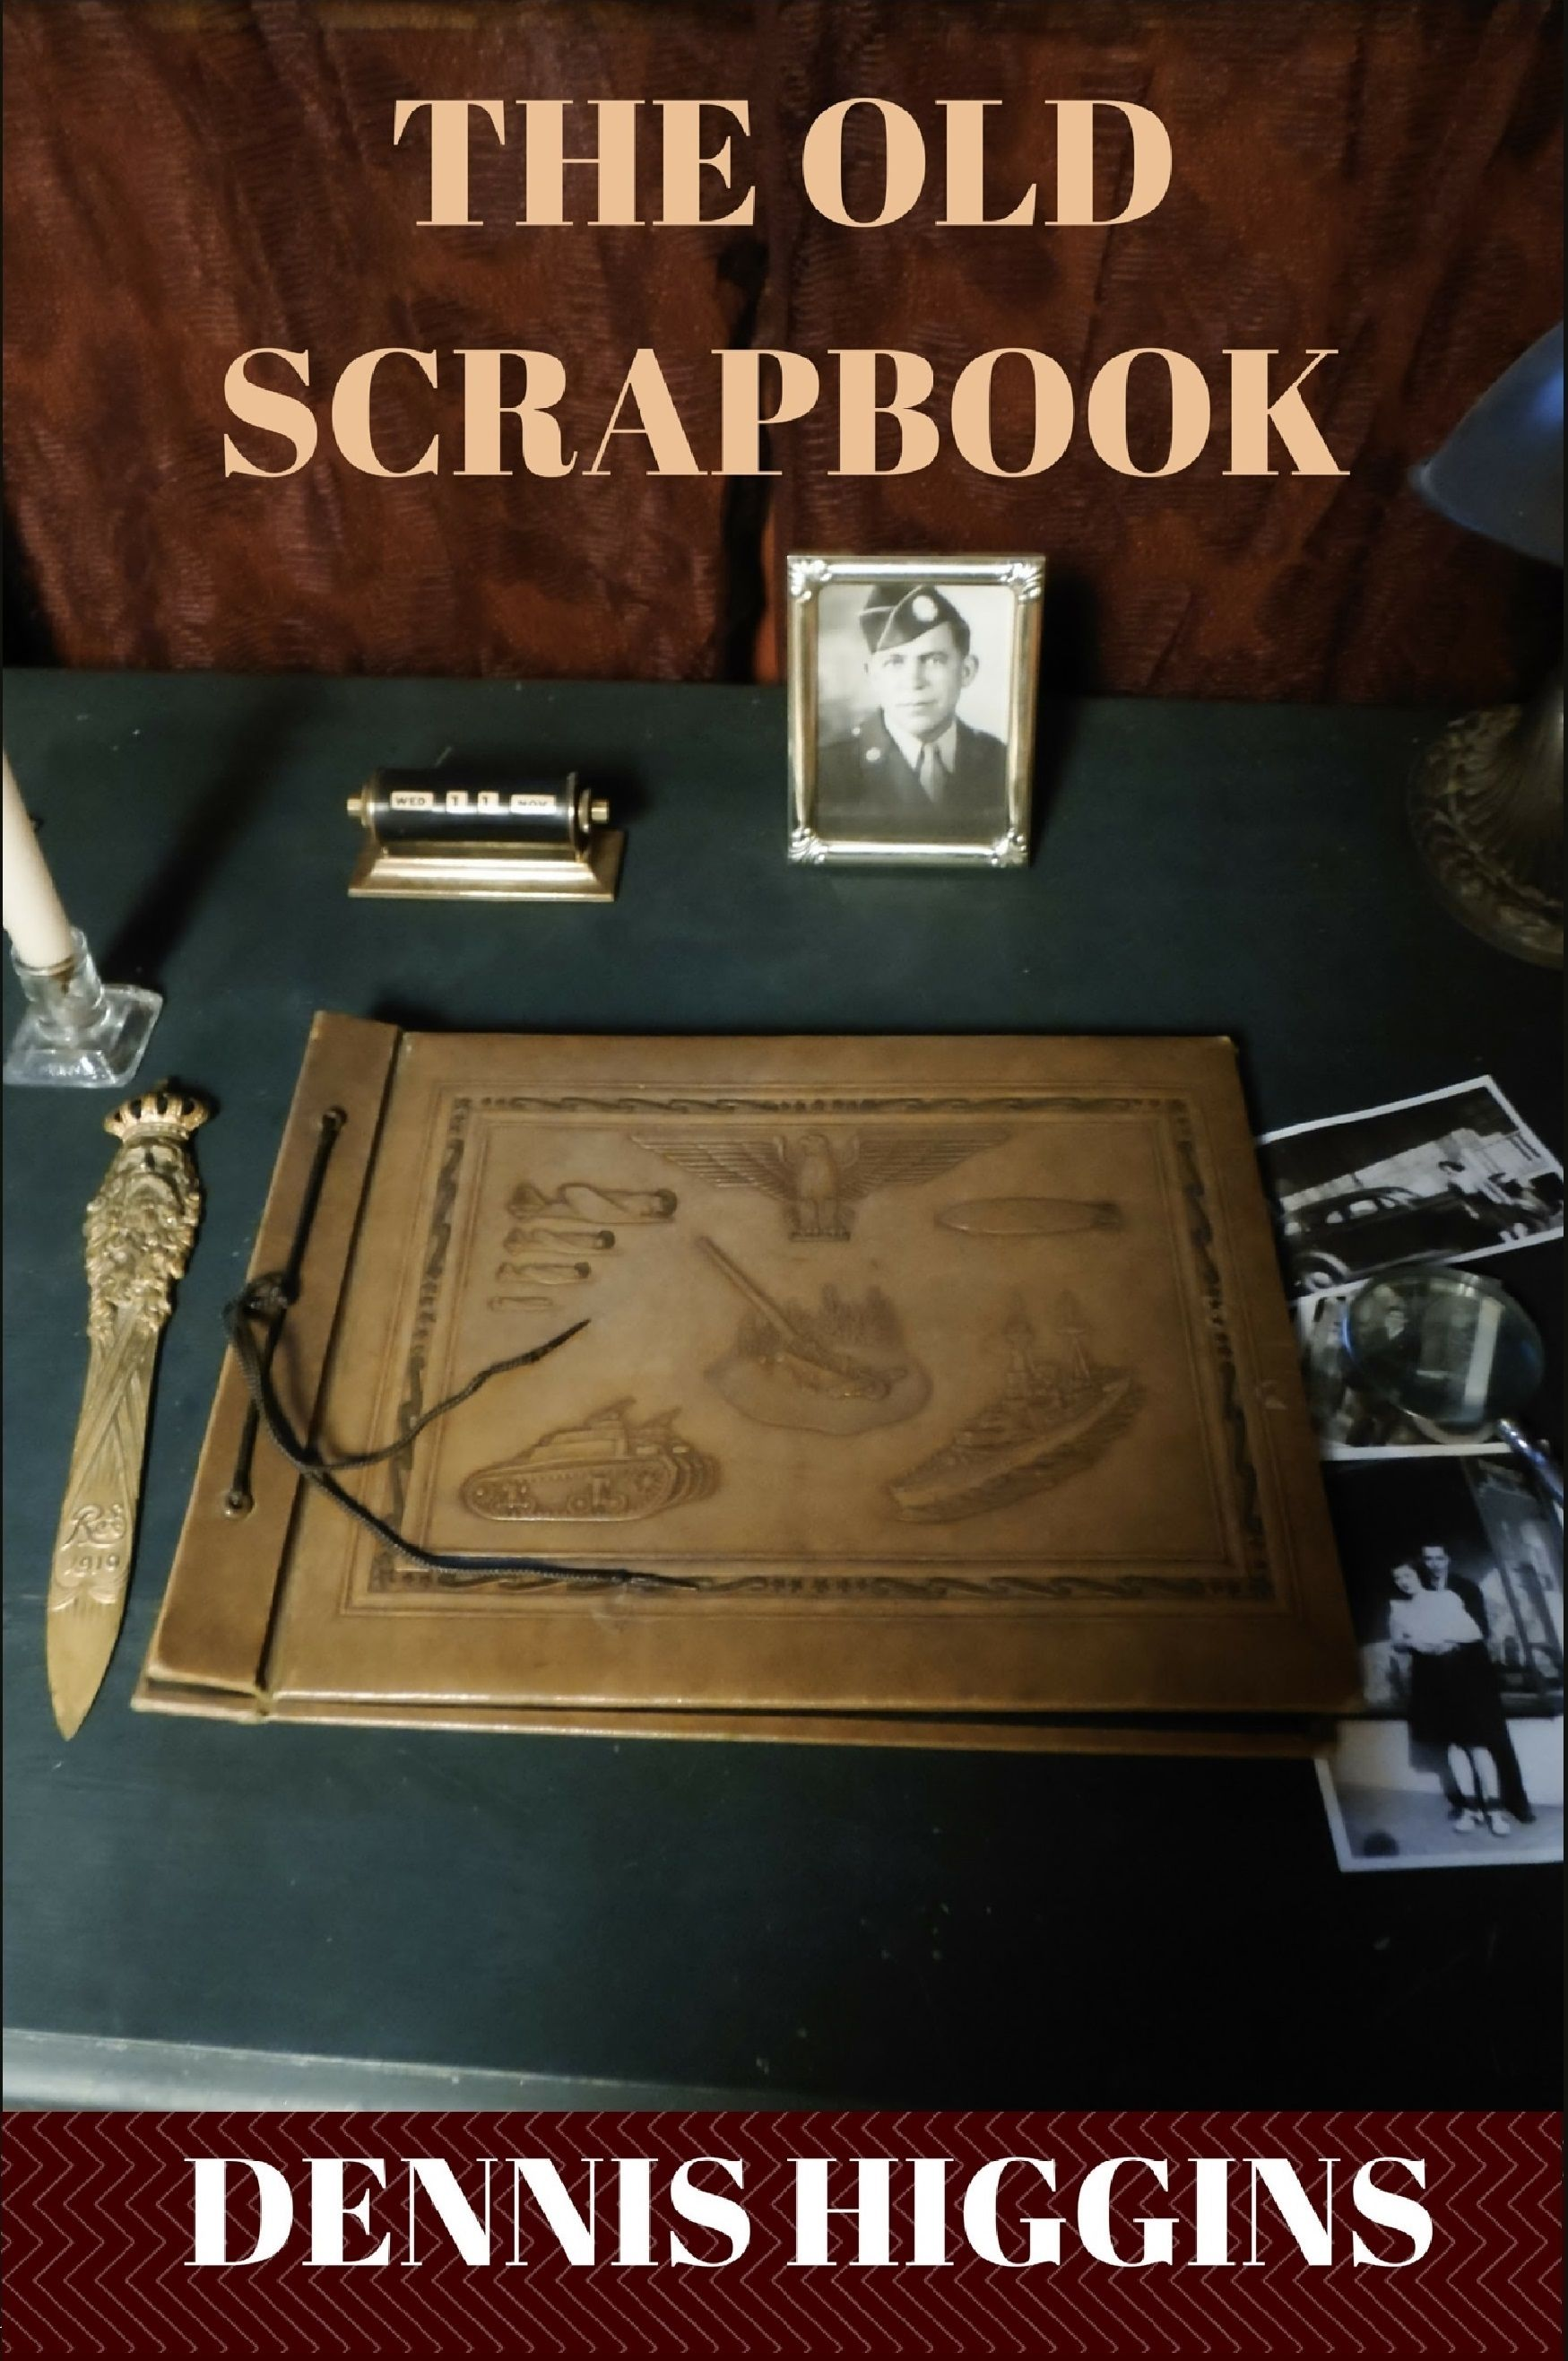 #timetravel to World War II. The scrapbook is real, the people were real. Their love was real. Uncover the mysteries found in a 70 year old scrapbook.  To be released 2016